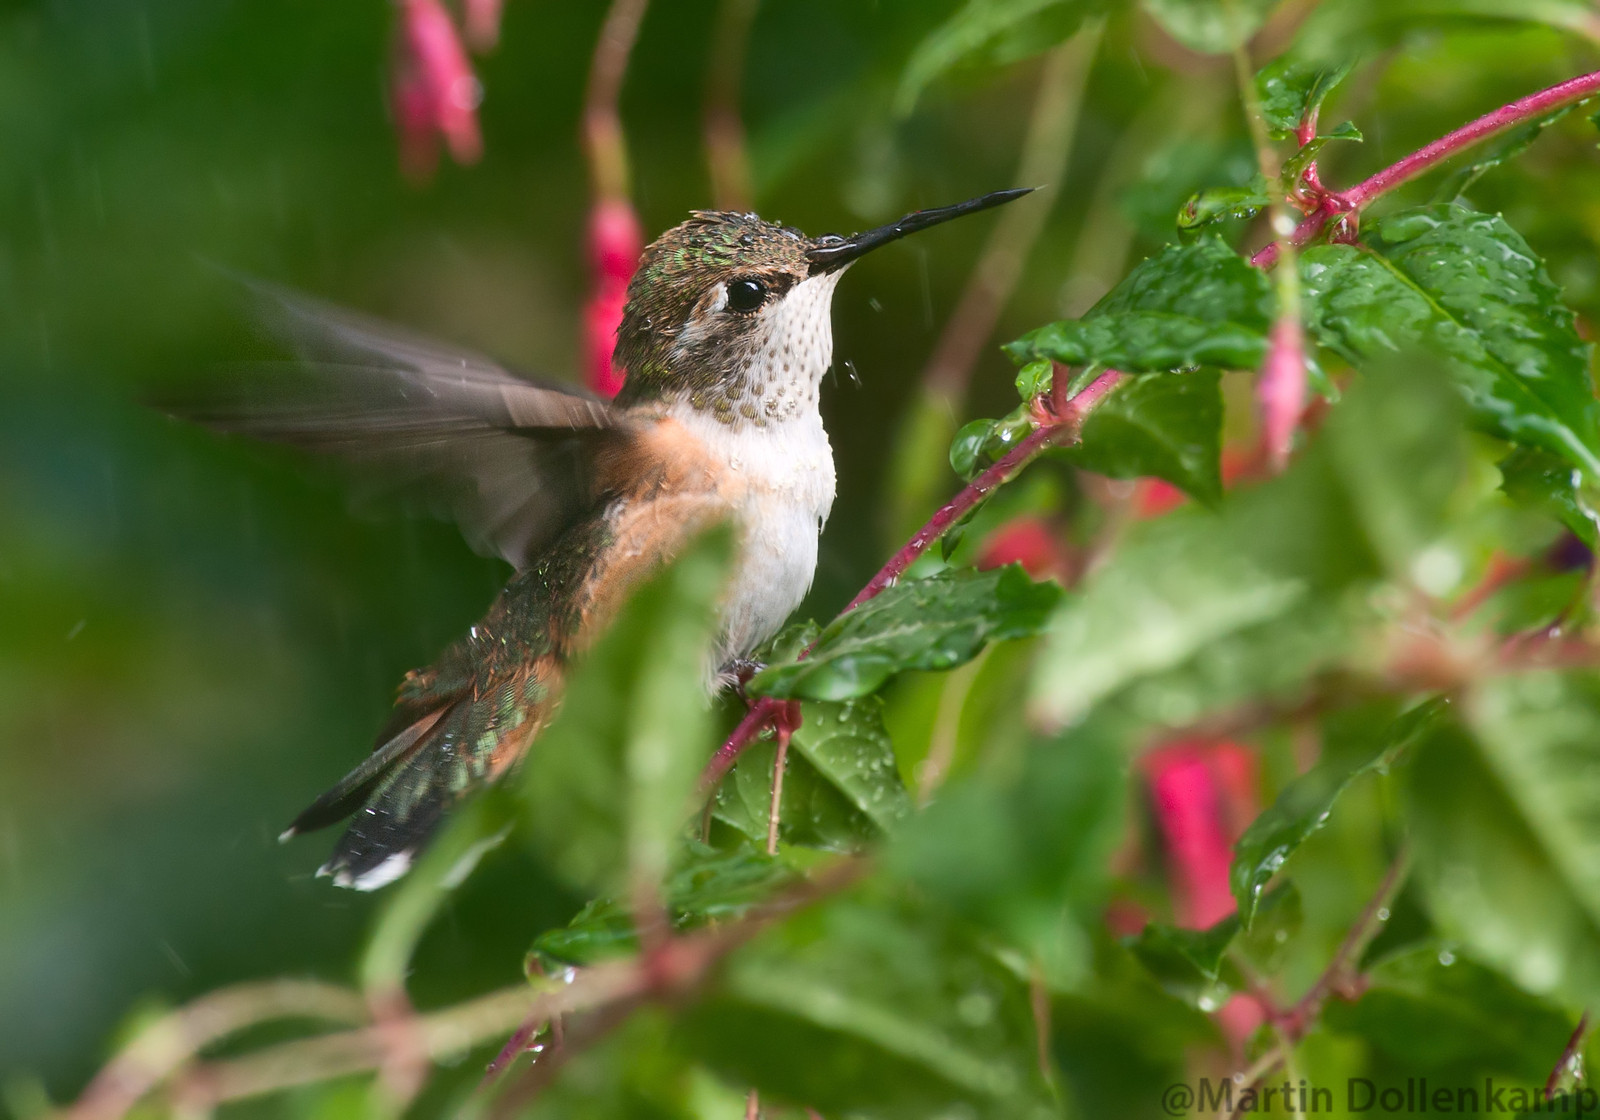 Hummingbird photography set up the hose spray and wait for the to come